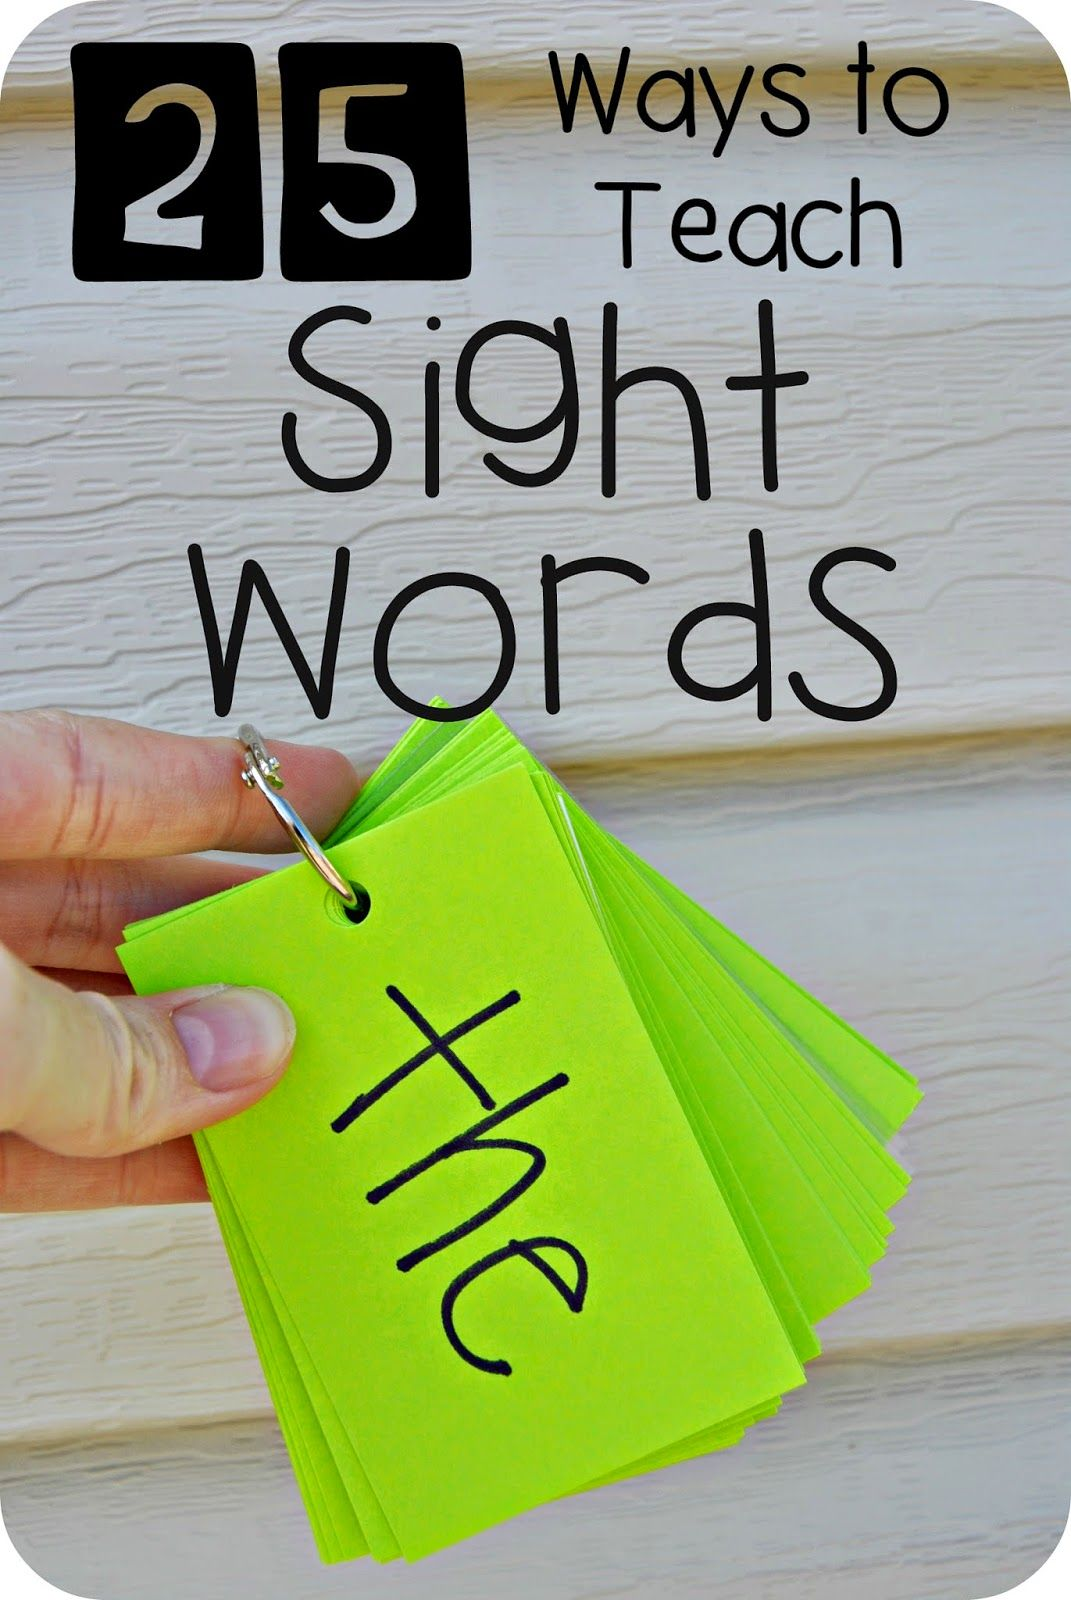 25 Ways To Teach Sight Words